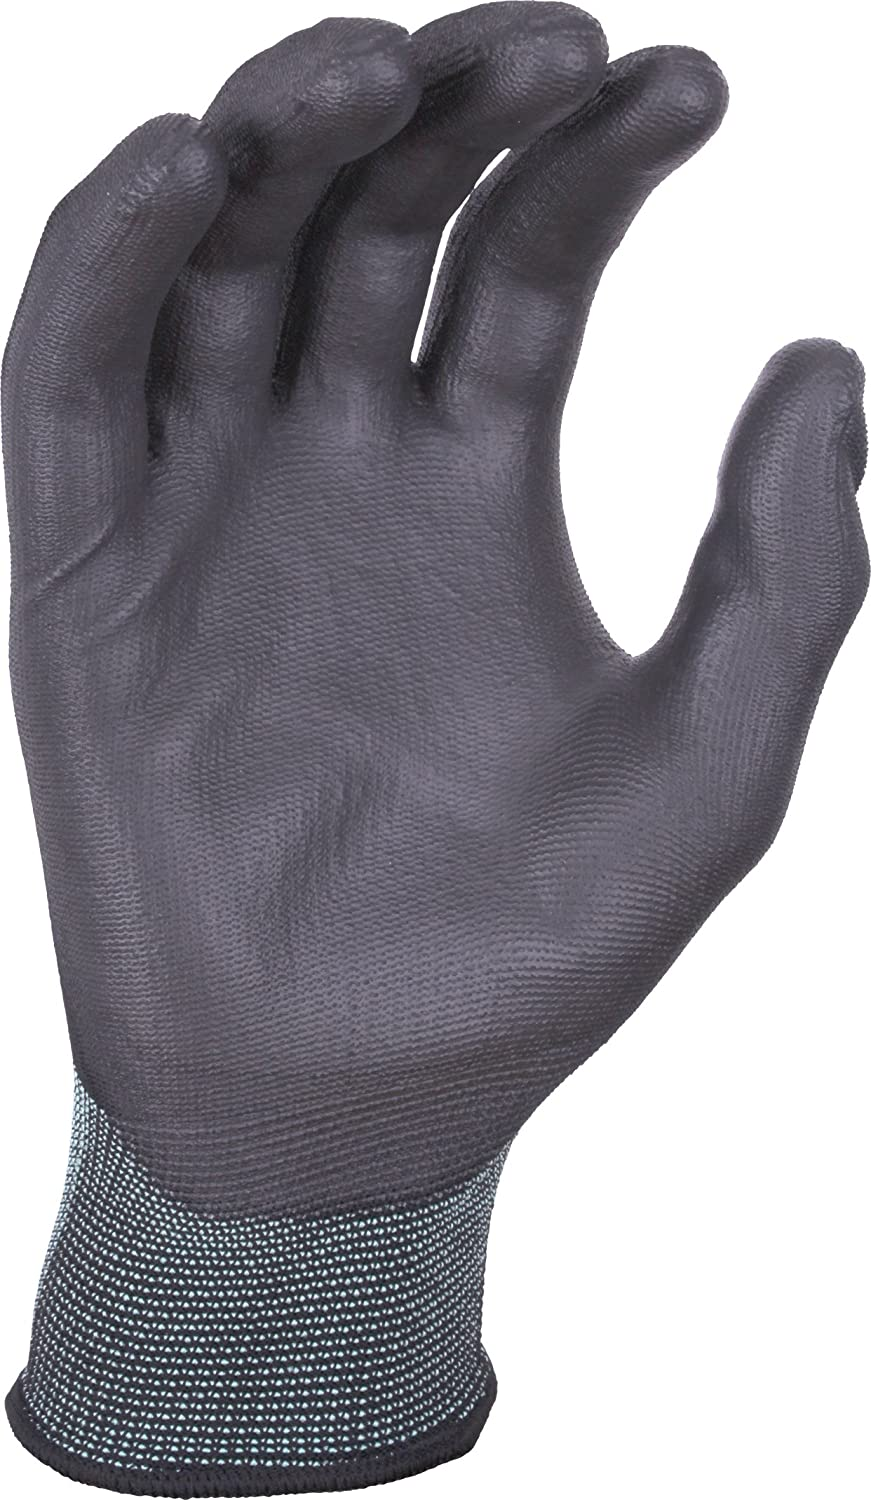 Multi Purpose Hand Protection UCI PU Palm Coated Precision Work Gloves 8//Medium, Black